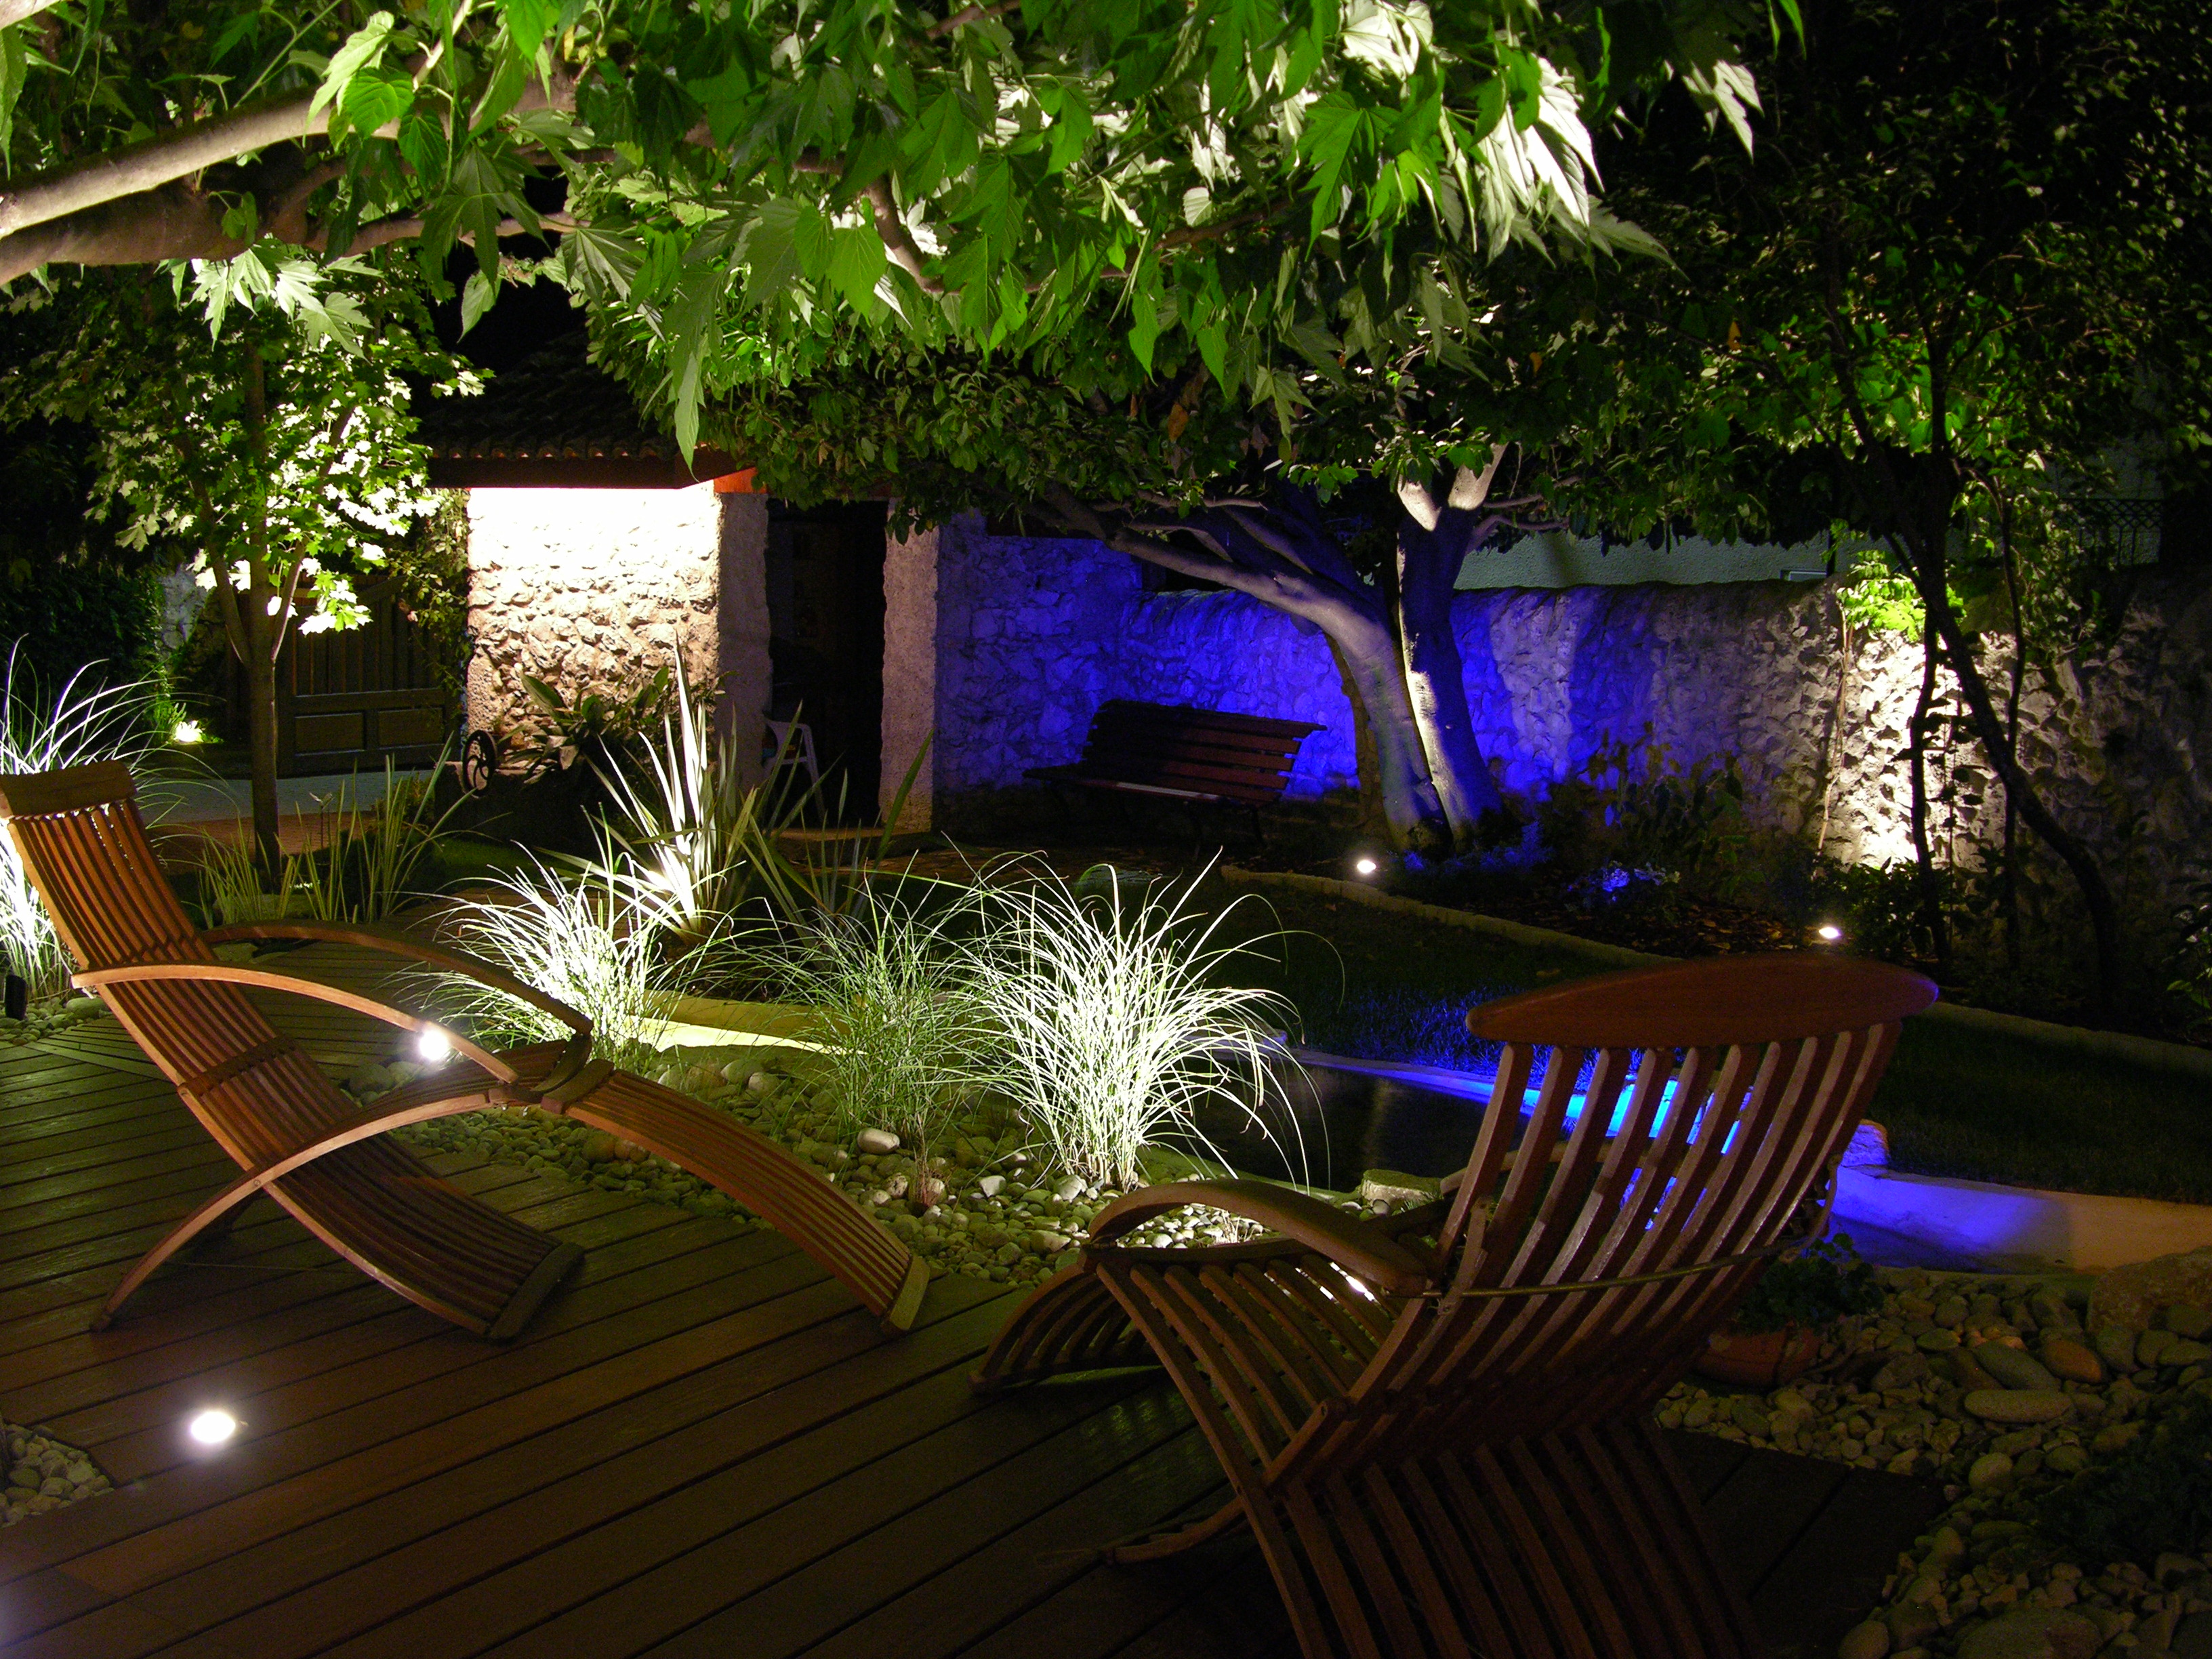 Comment mettre son jardin en lumi re for Lumiere d exterieur